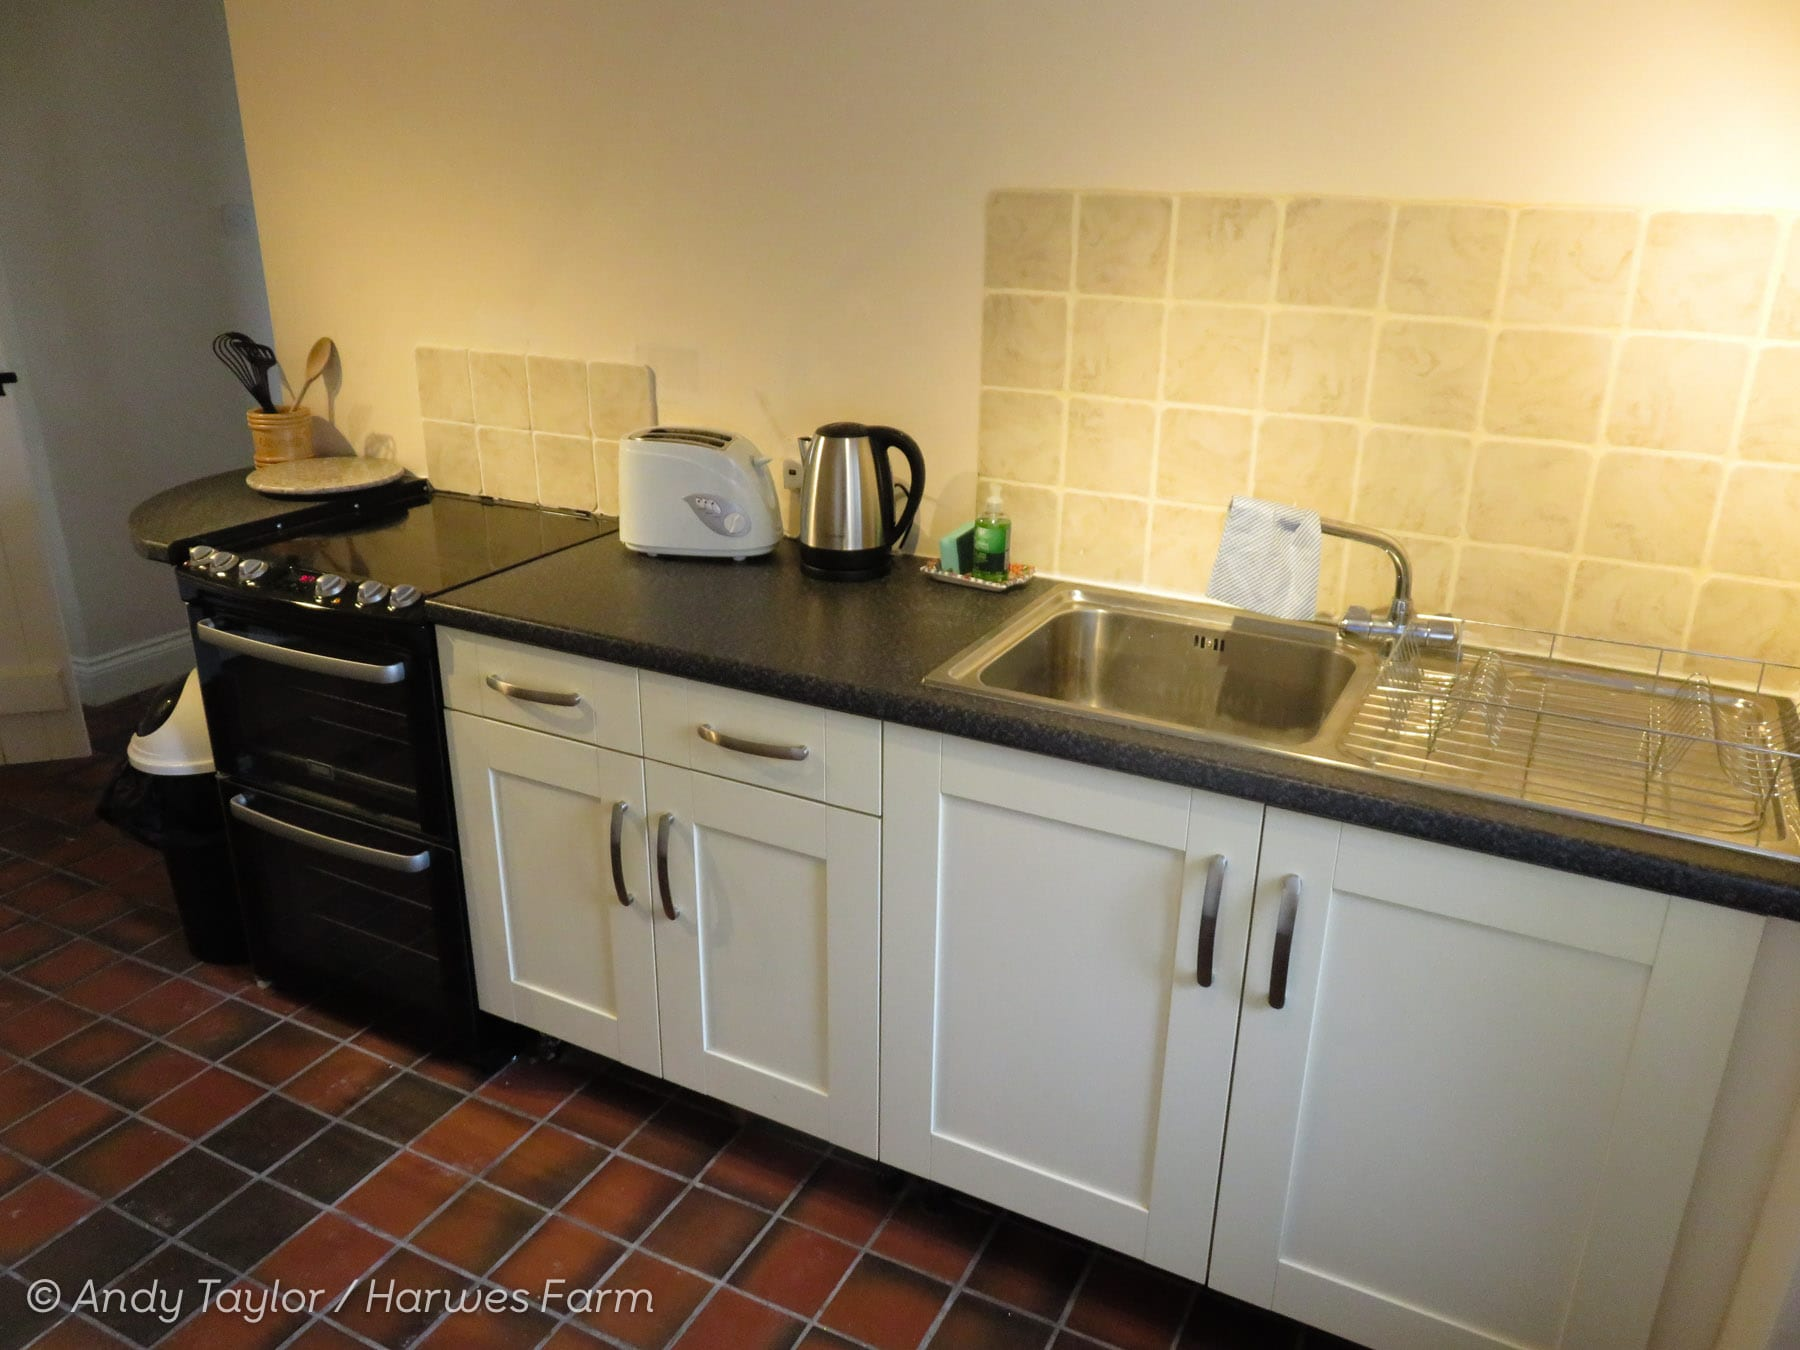 Kitchen sink area and cooker